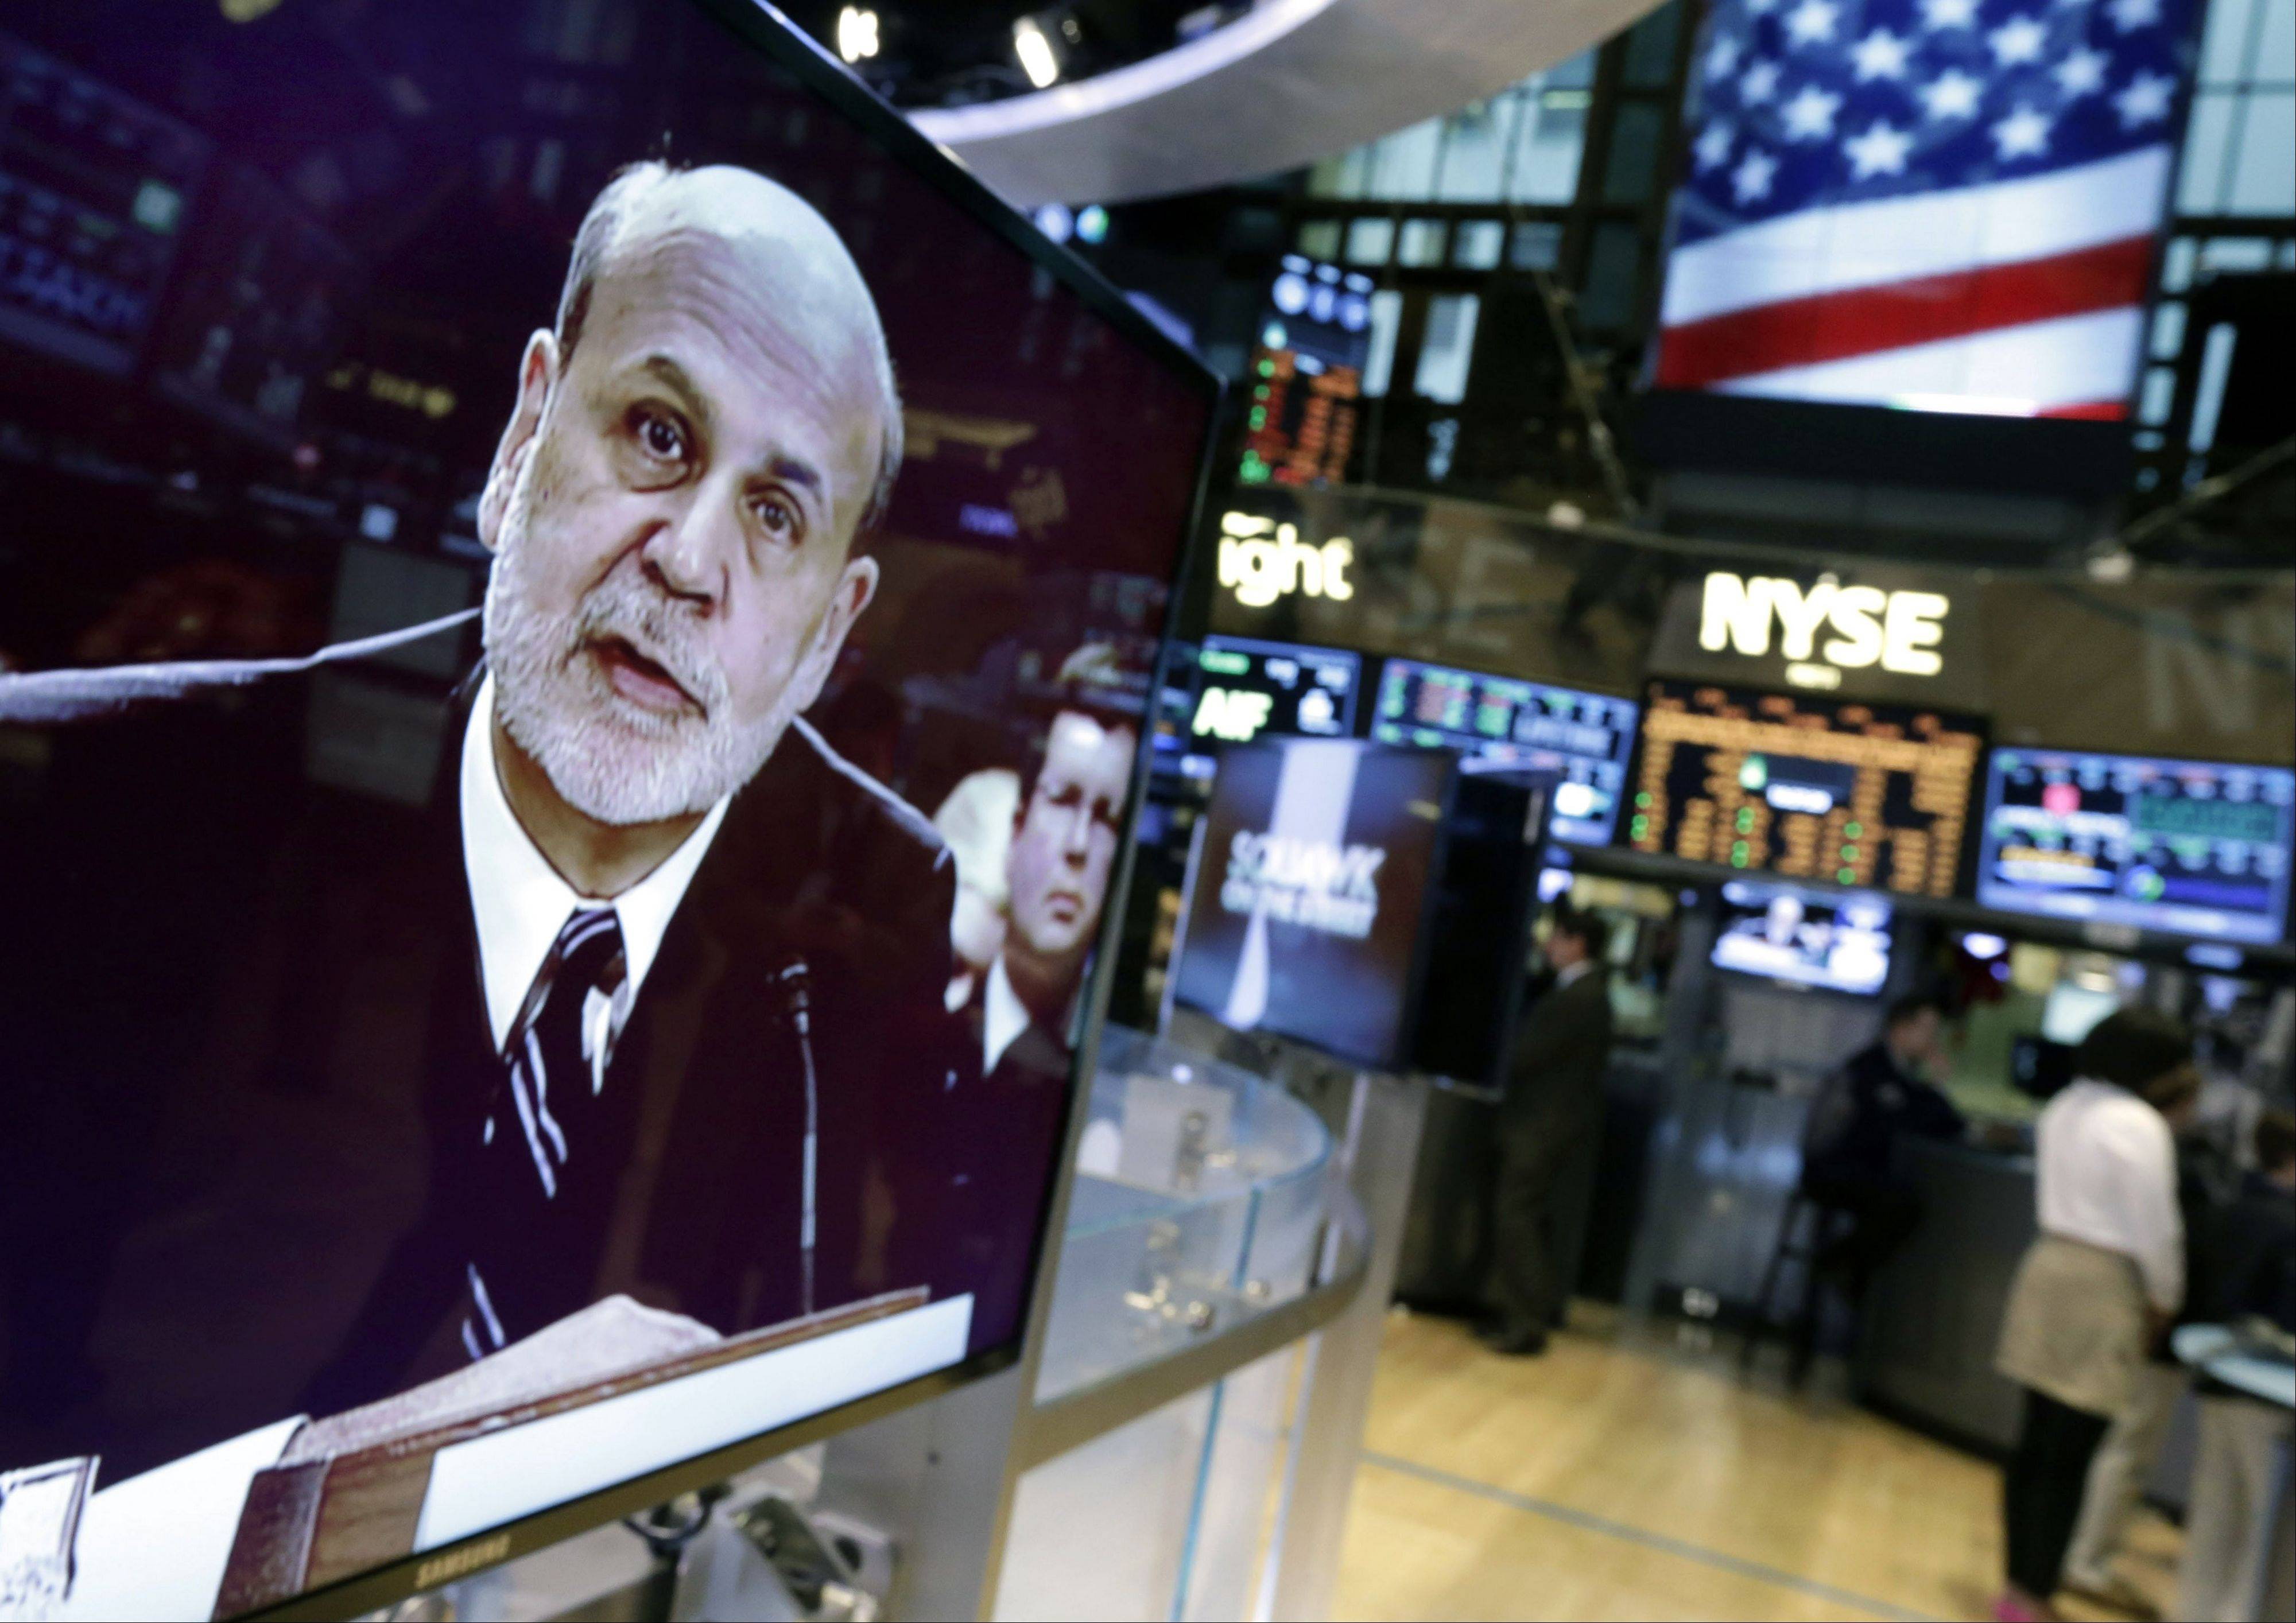 Federal Reserve Chairman Ben Bernanke is seen on a monitor on the floor of the New York Stock Exchange Tuesday. The Federal Reserve�s low interest-rate policies are giving key support to an economy still burdened by high unemployment, Bernanke told Congress.